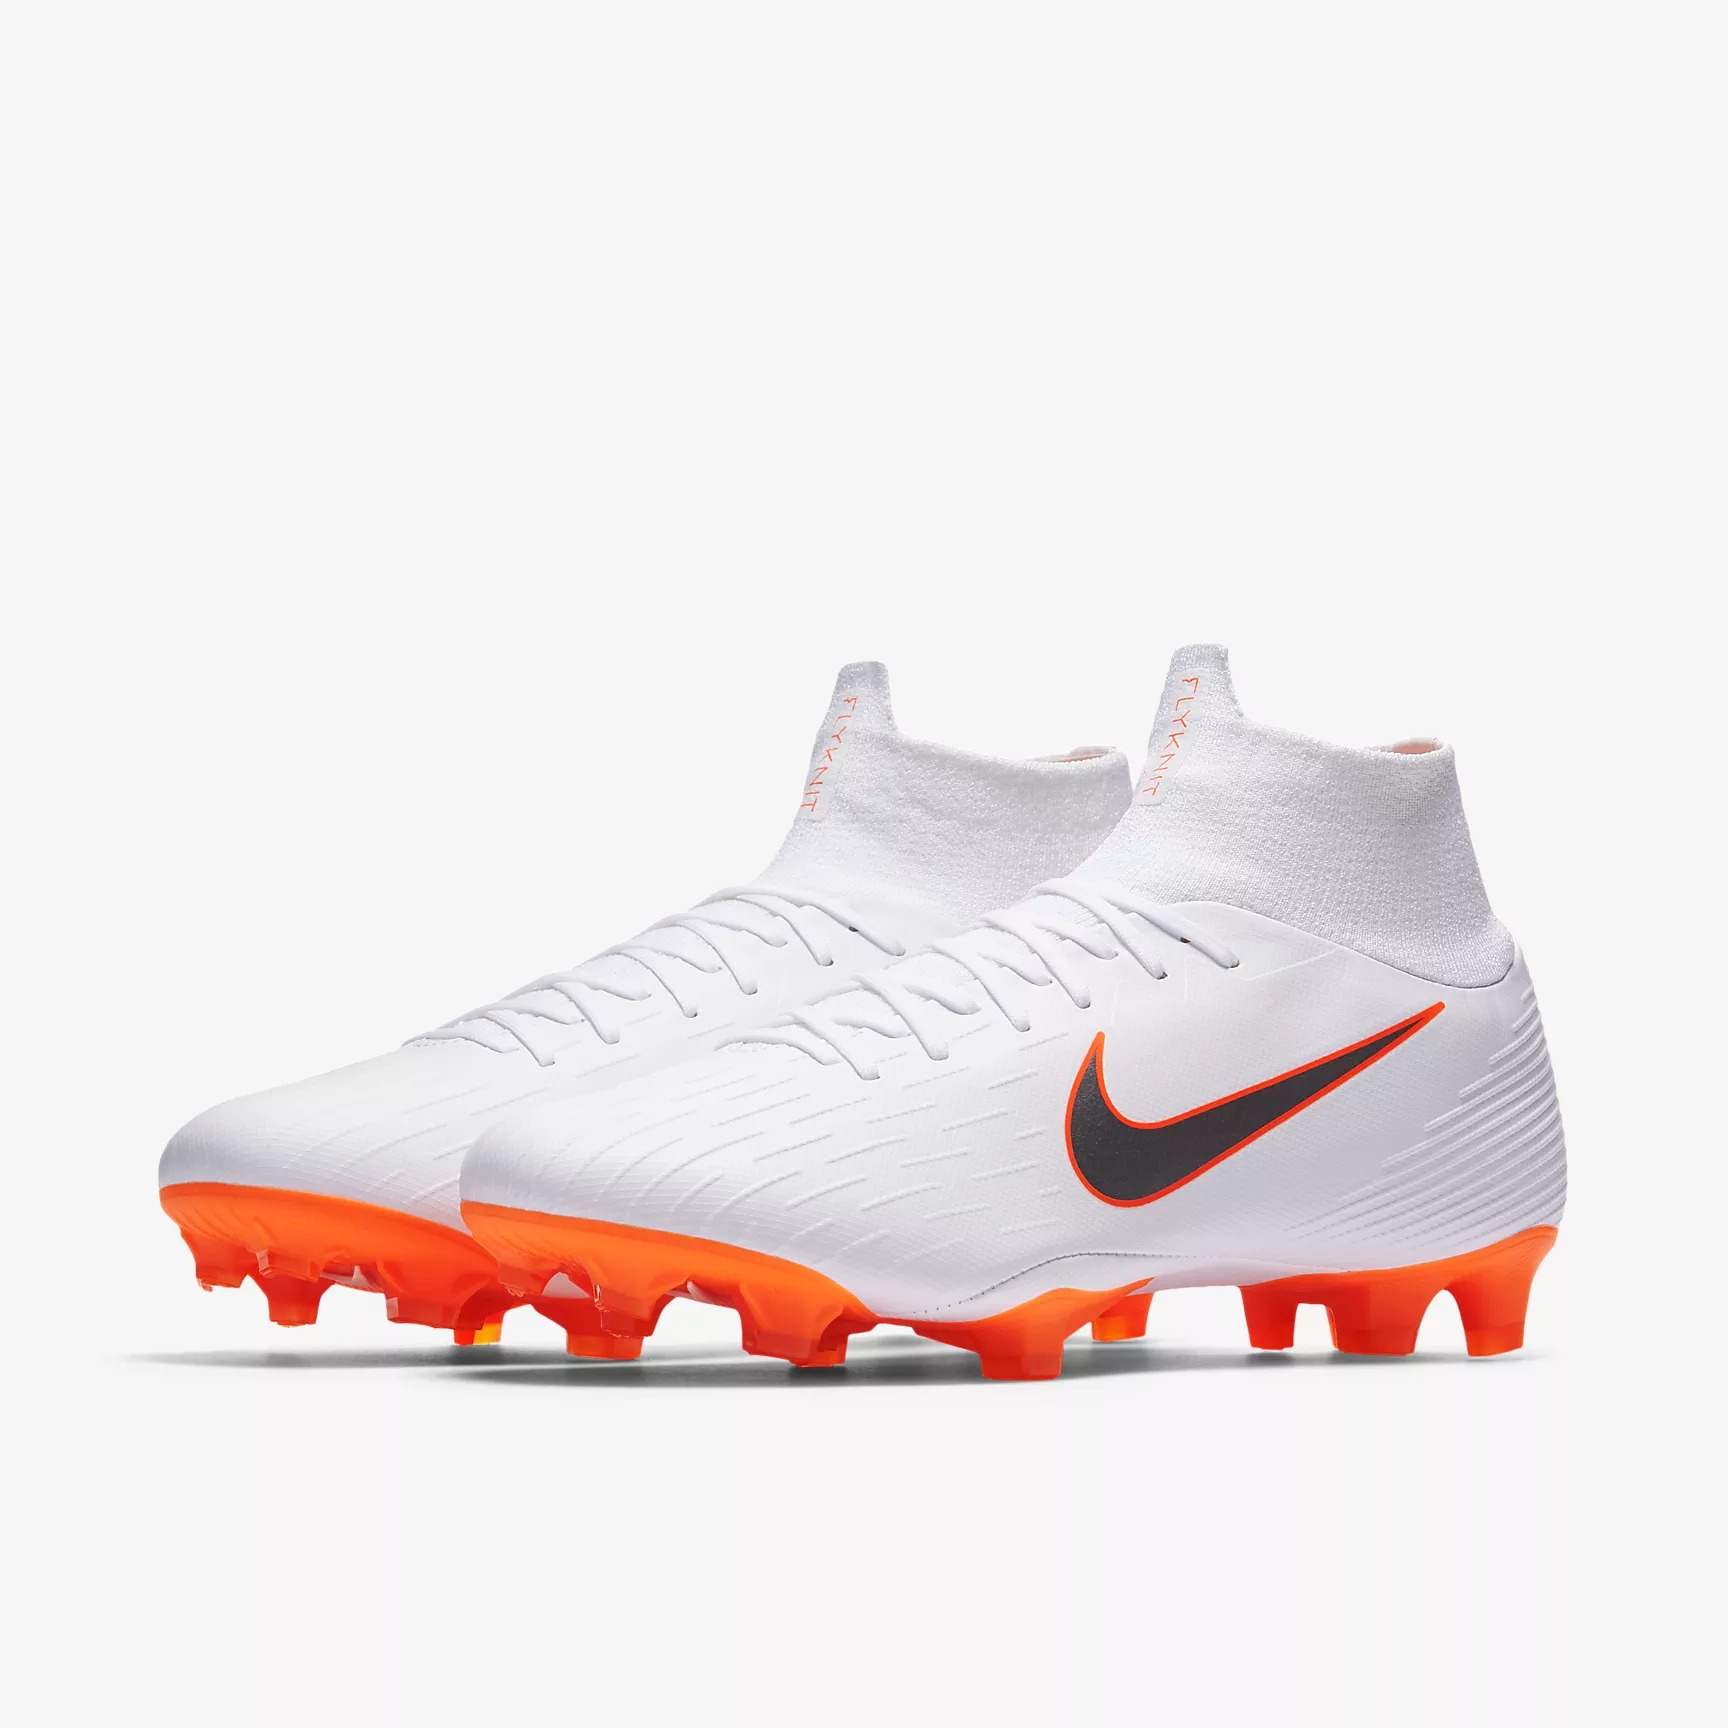 brand new 23ba6 dff71 Nike Mercurial Superfly VI Pro FG Soccer Cleats - Soccer ...